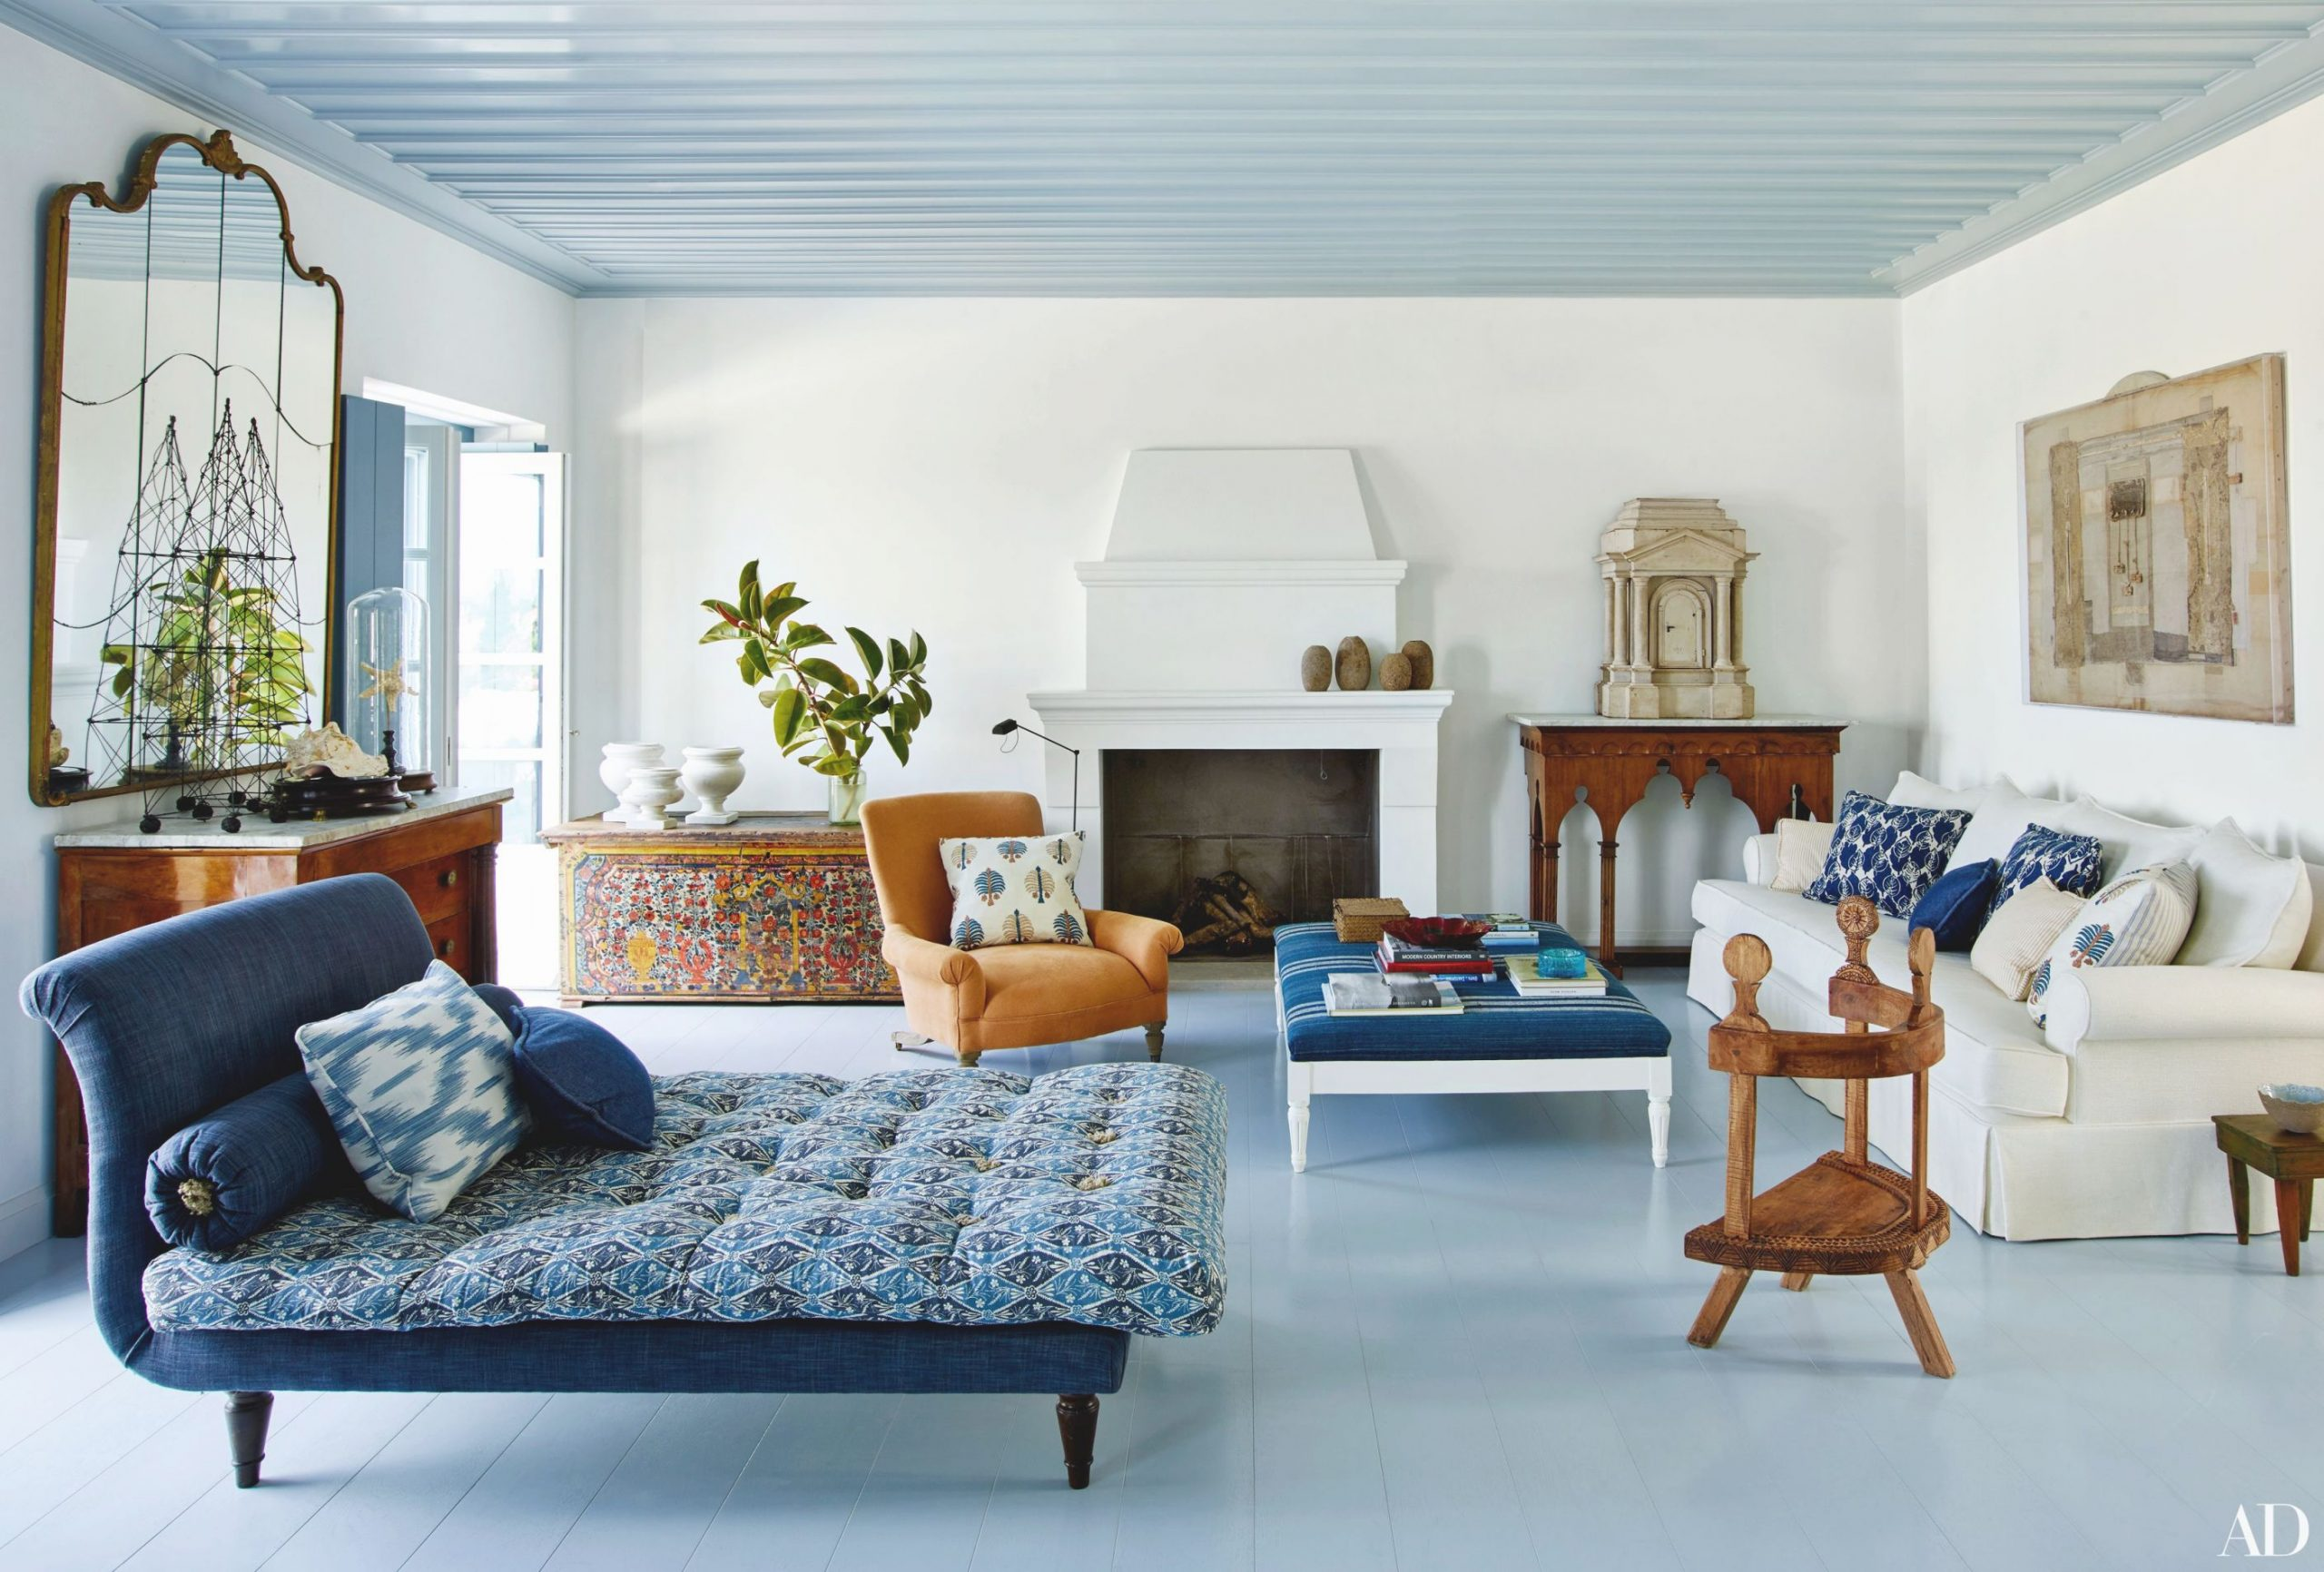 30 Rooms That Showcase Blue-And-White Decor | Architectural within Hunting Decor For Living Room